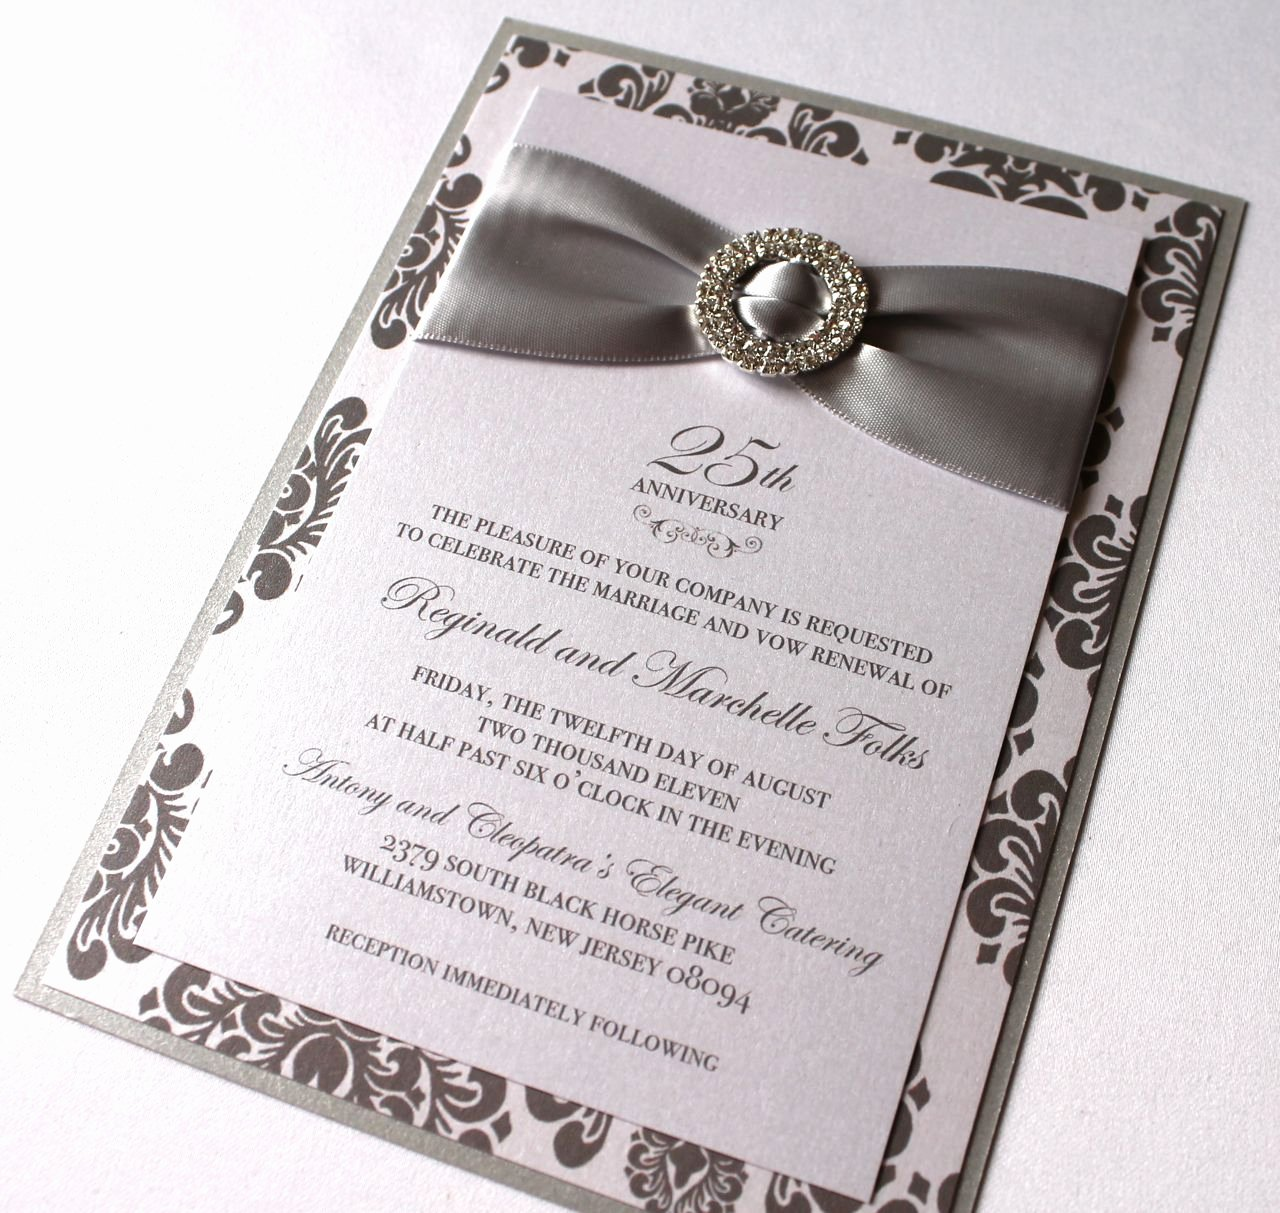 25th Wedding Anniversary Invitations Templates Lovely Embellished Paperie 25th Anniversary Invitations Silver and White Damask